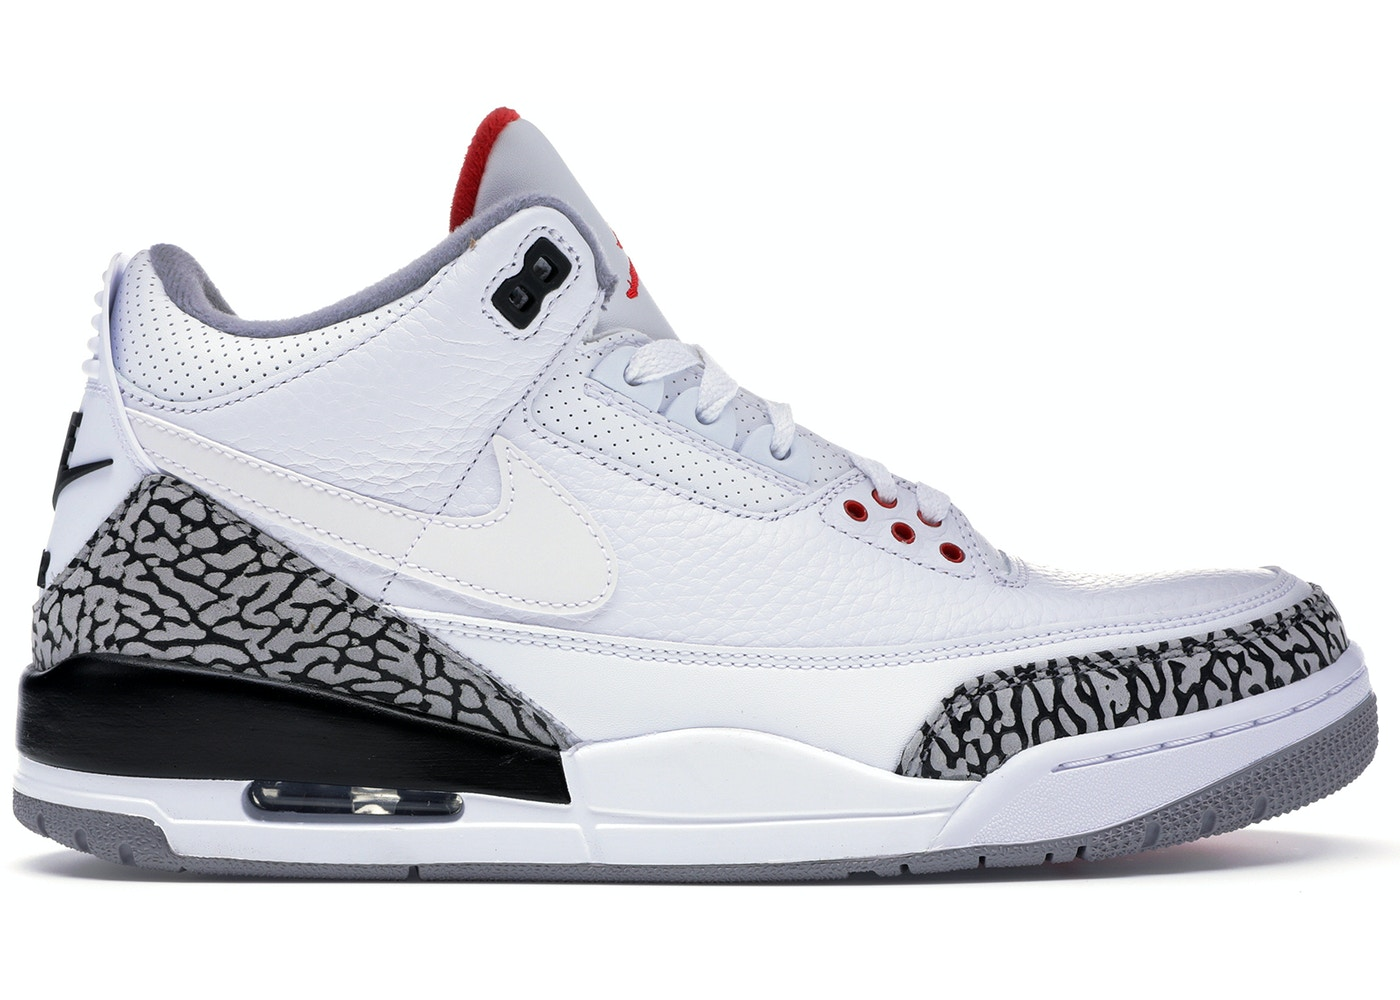 huge discount 7b39b e3374 Air Jordan 3 JTH Super Bowl